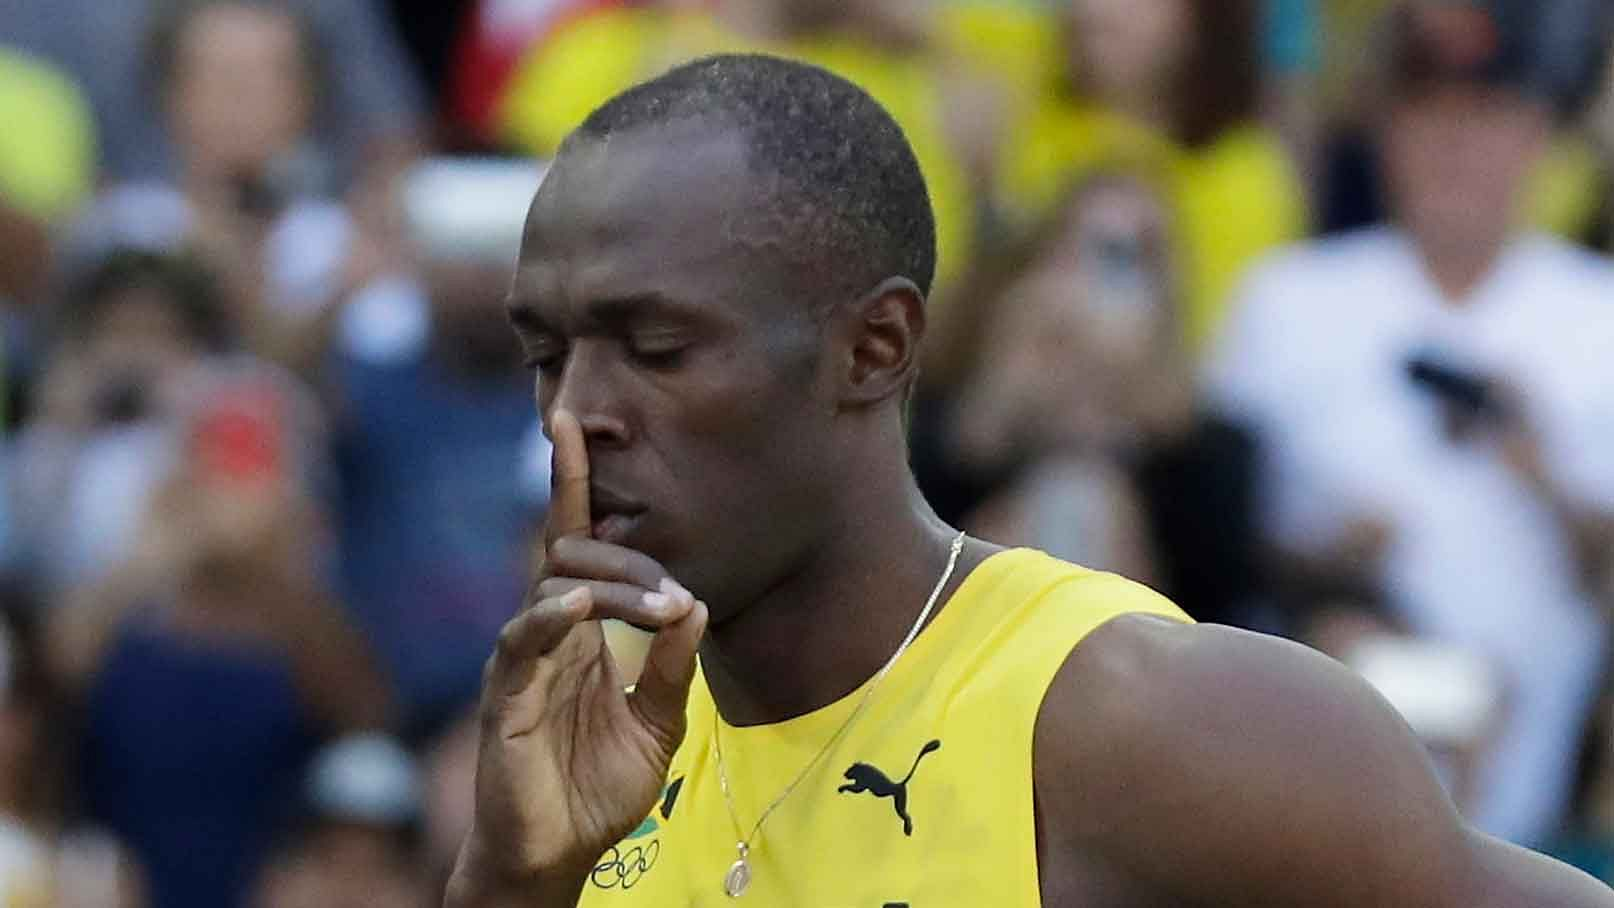 """Sluggish"" Usain Bolt Recovers From Slow Start to Win 100m ..."